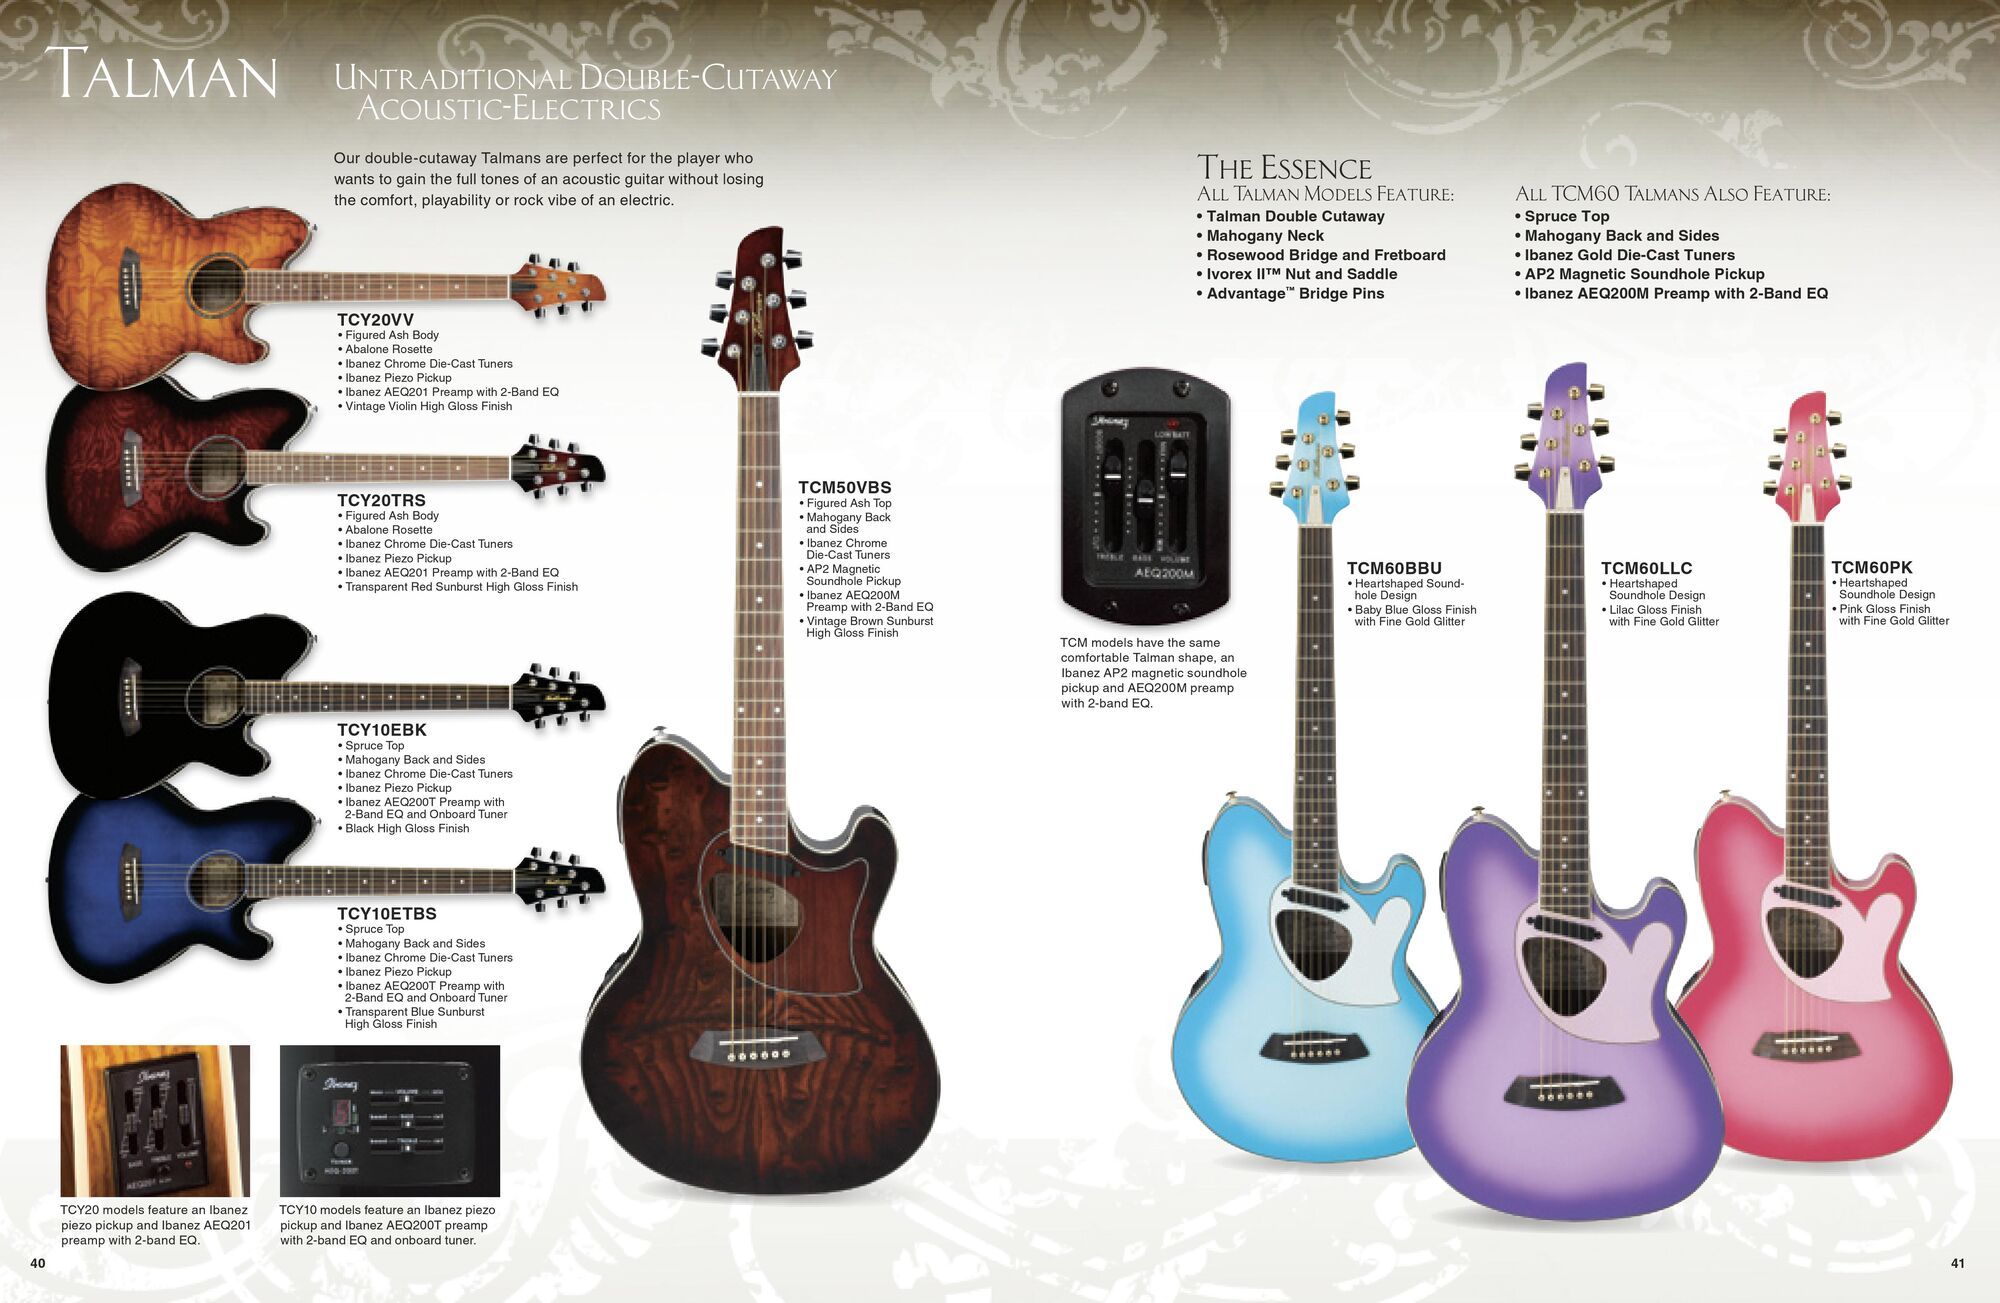 Image 2009 Usa Acoustics Catalog P40 41 Ibanez Wiki Fandom Electric Guitar Violin Preamplifier Powered By Wikia